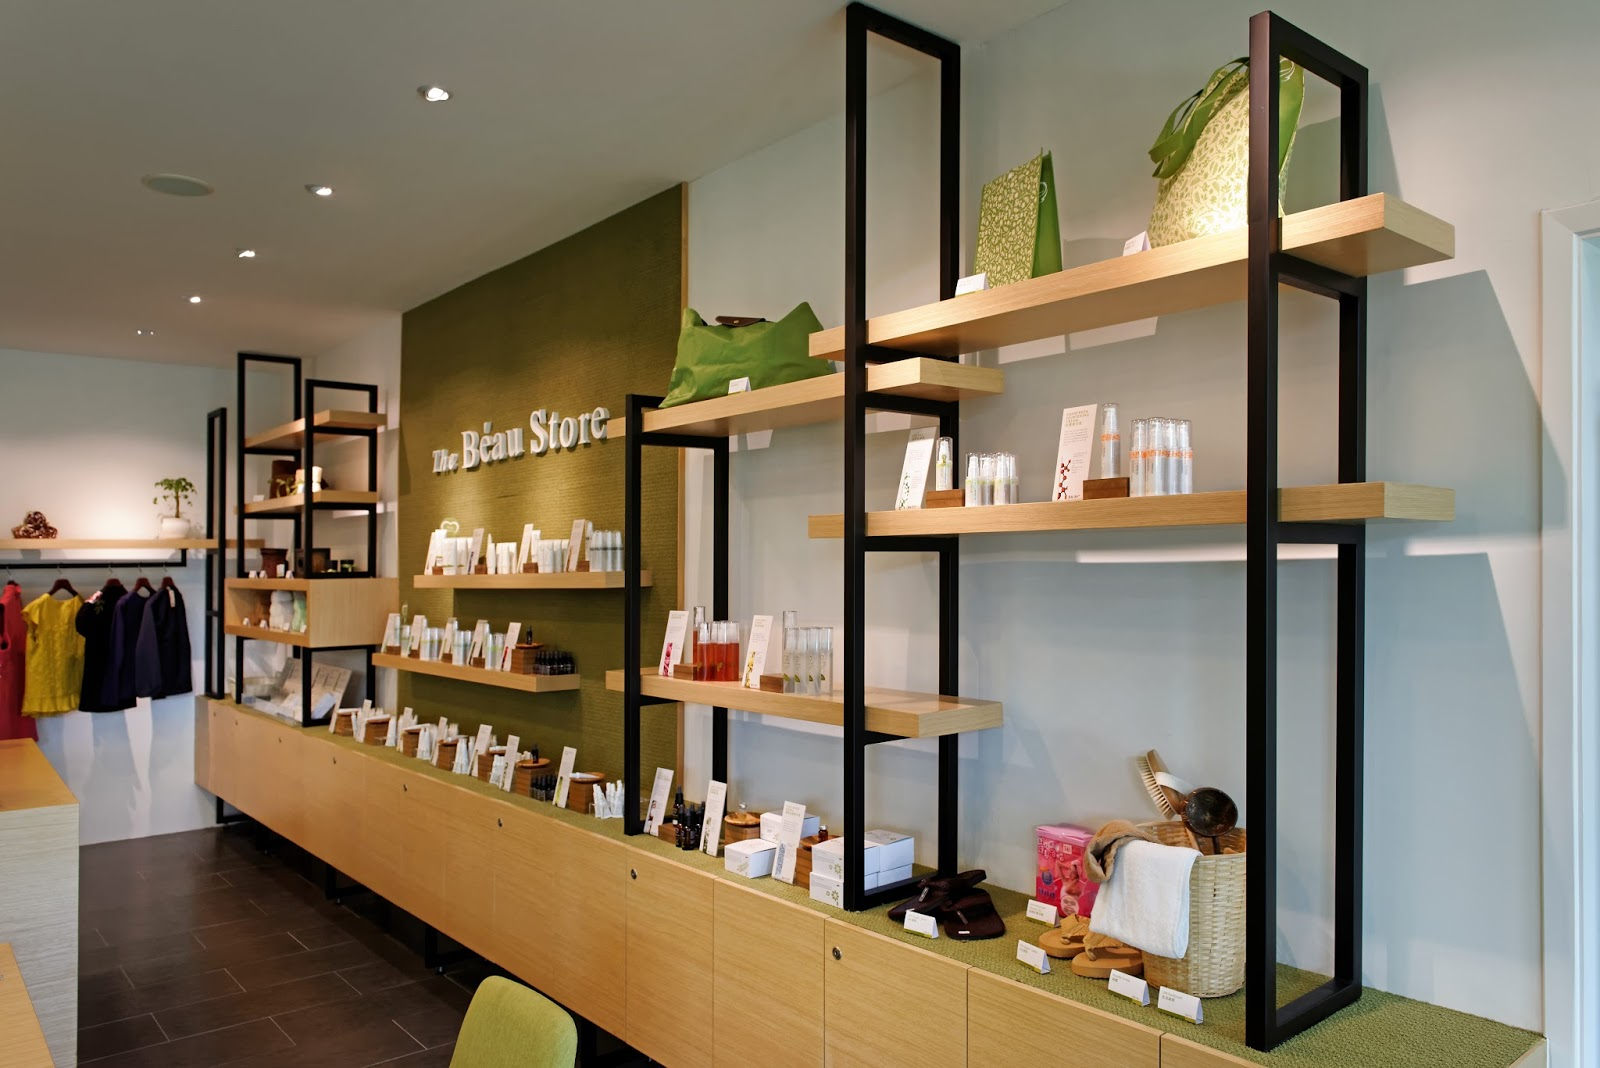 Herbaline Puchong Invite You to Look Well and Eat Well Today